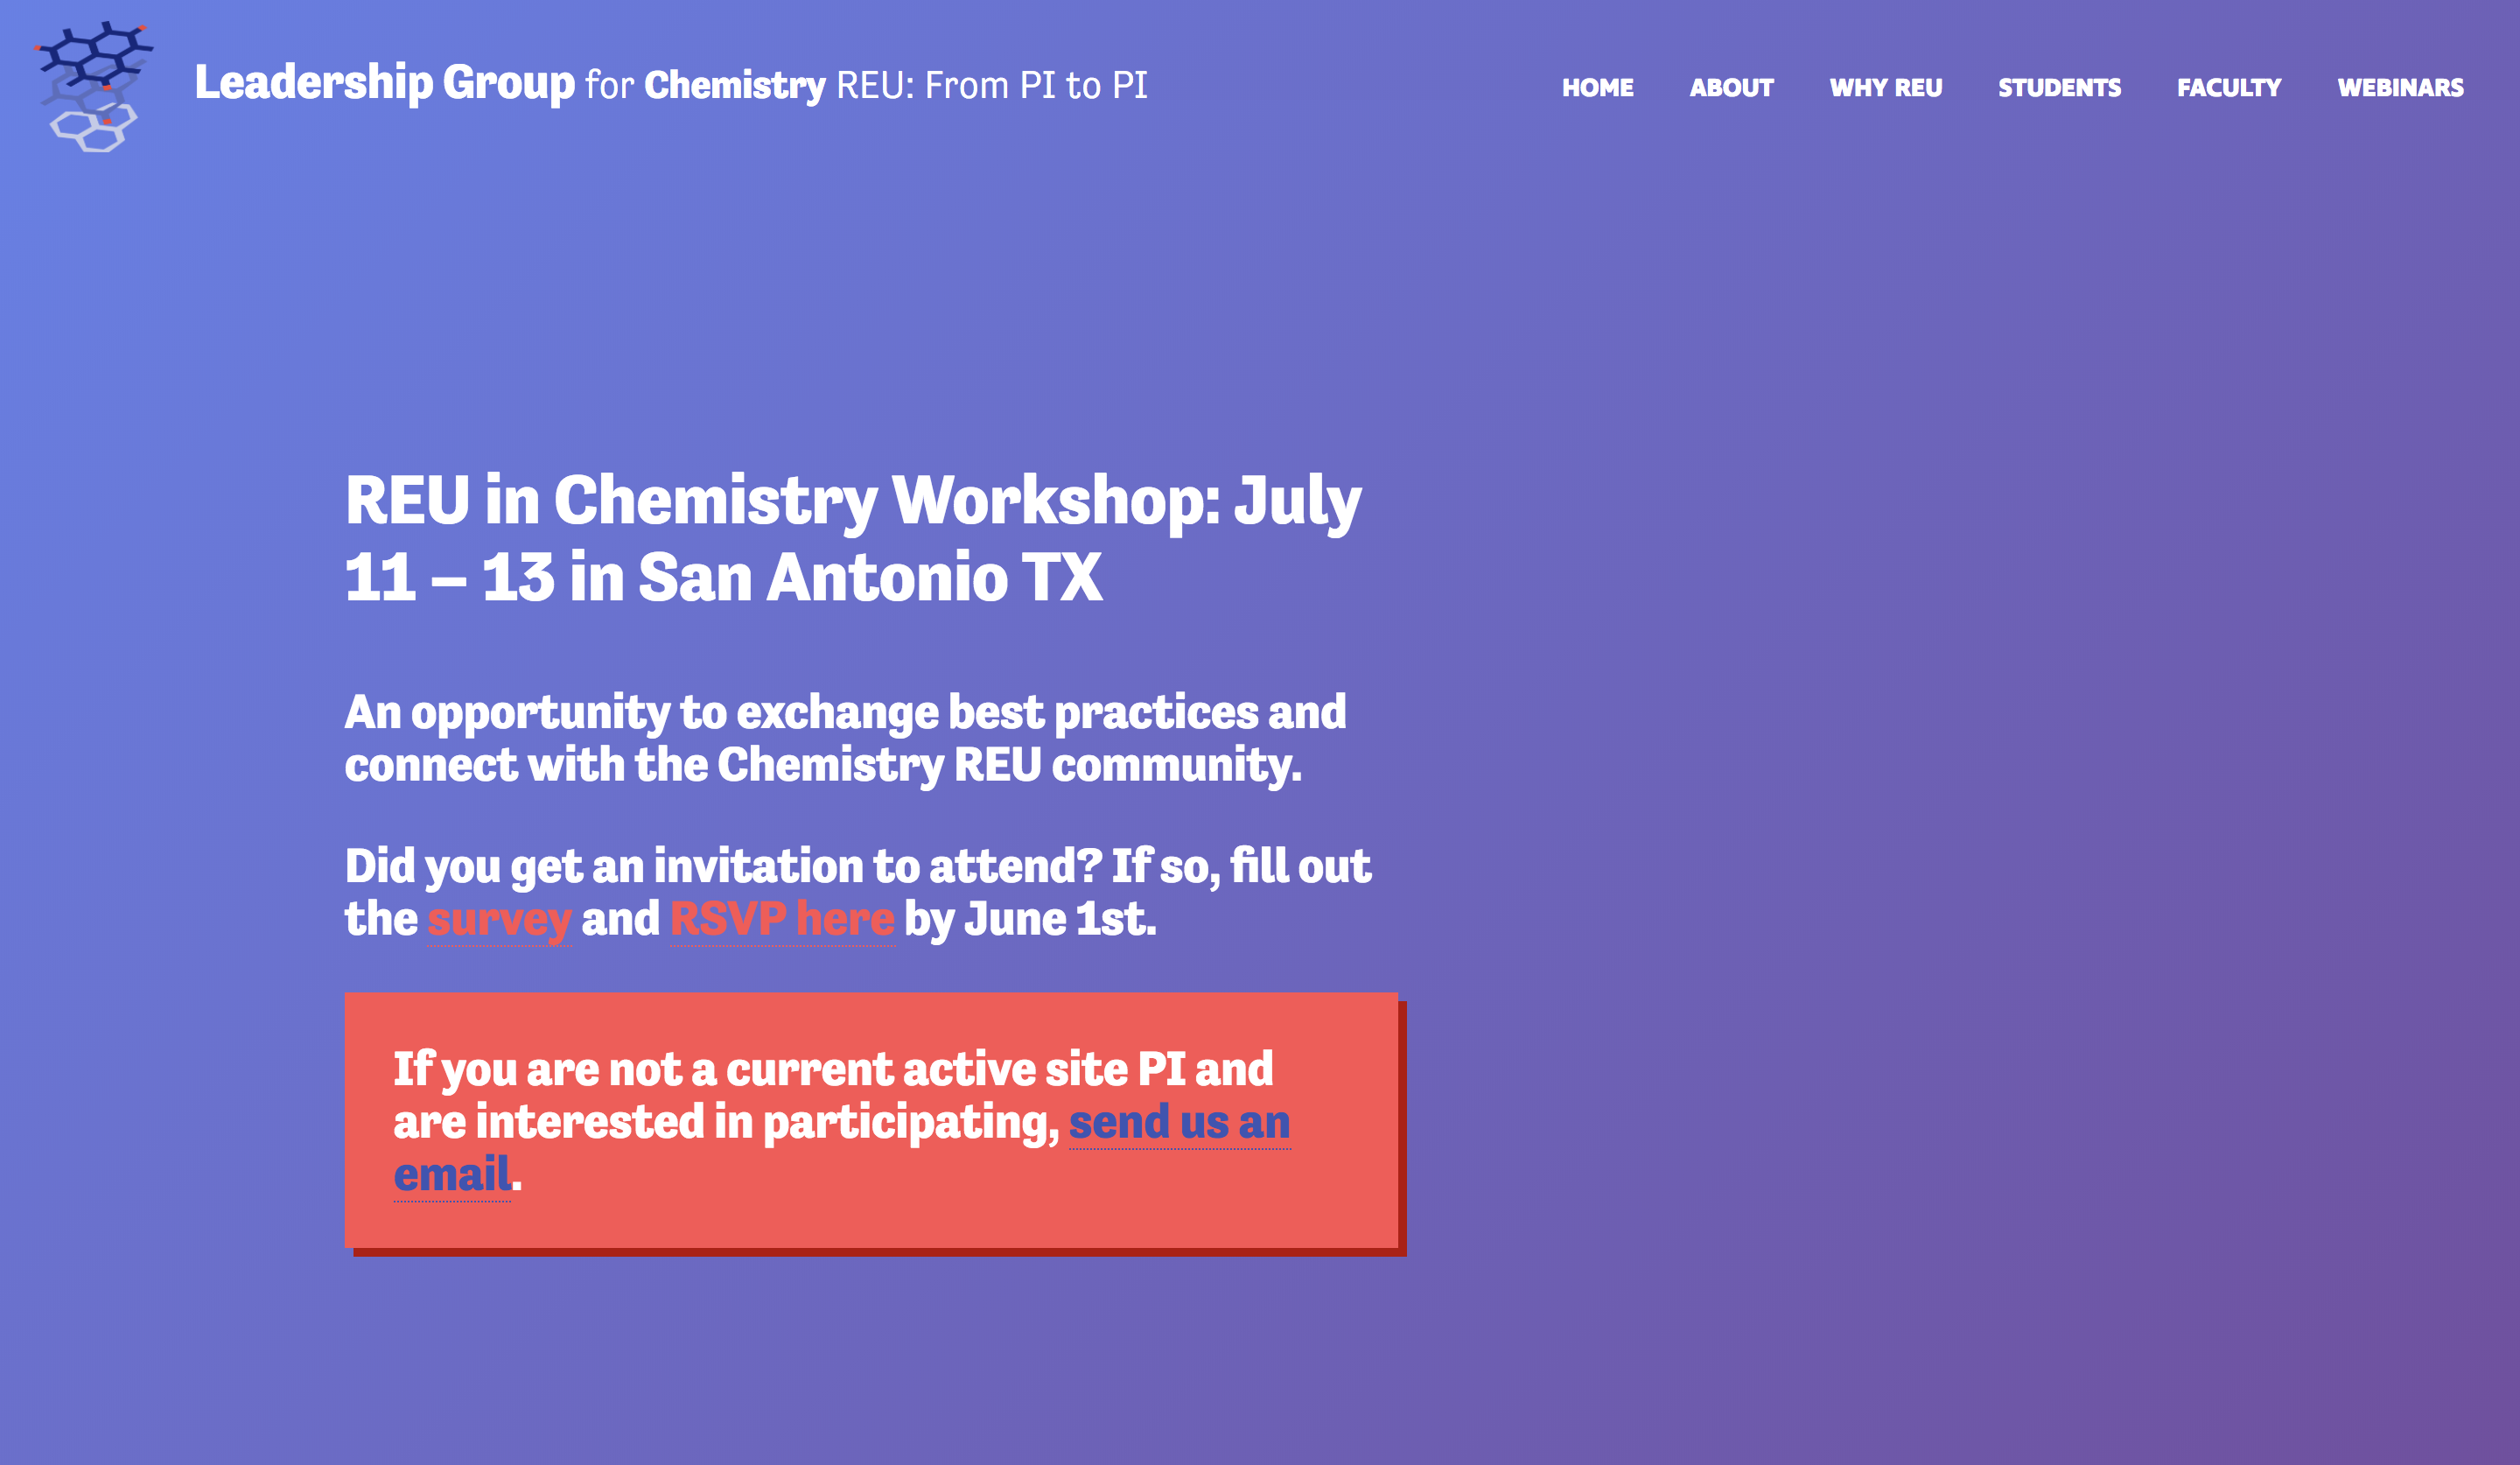 The NSF REU Leadership Group website takes advantage of gradients and imagery to draw in users.